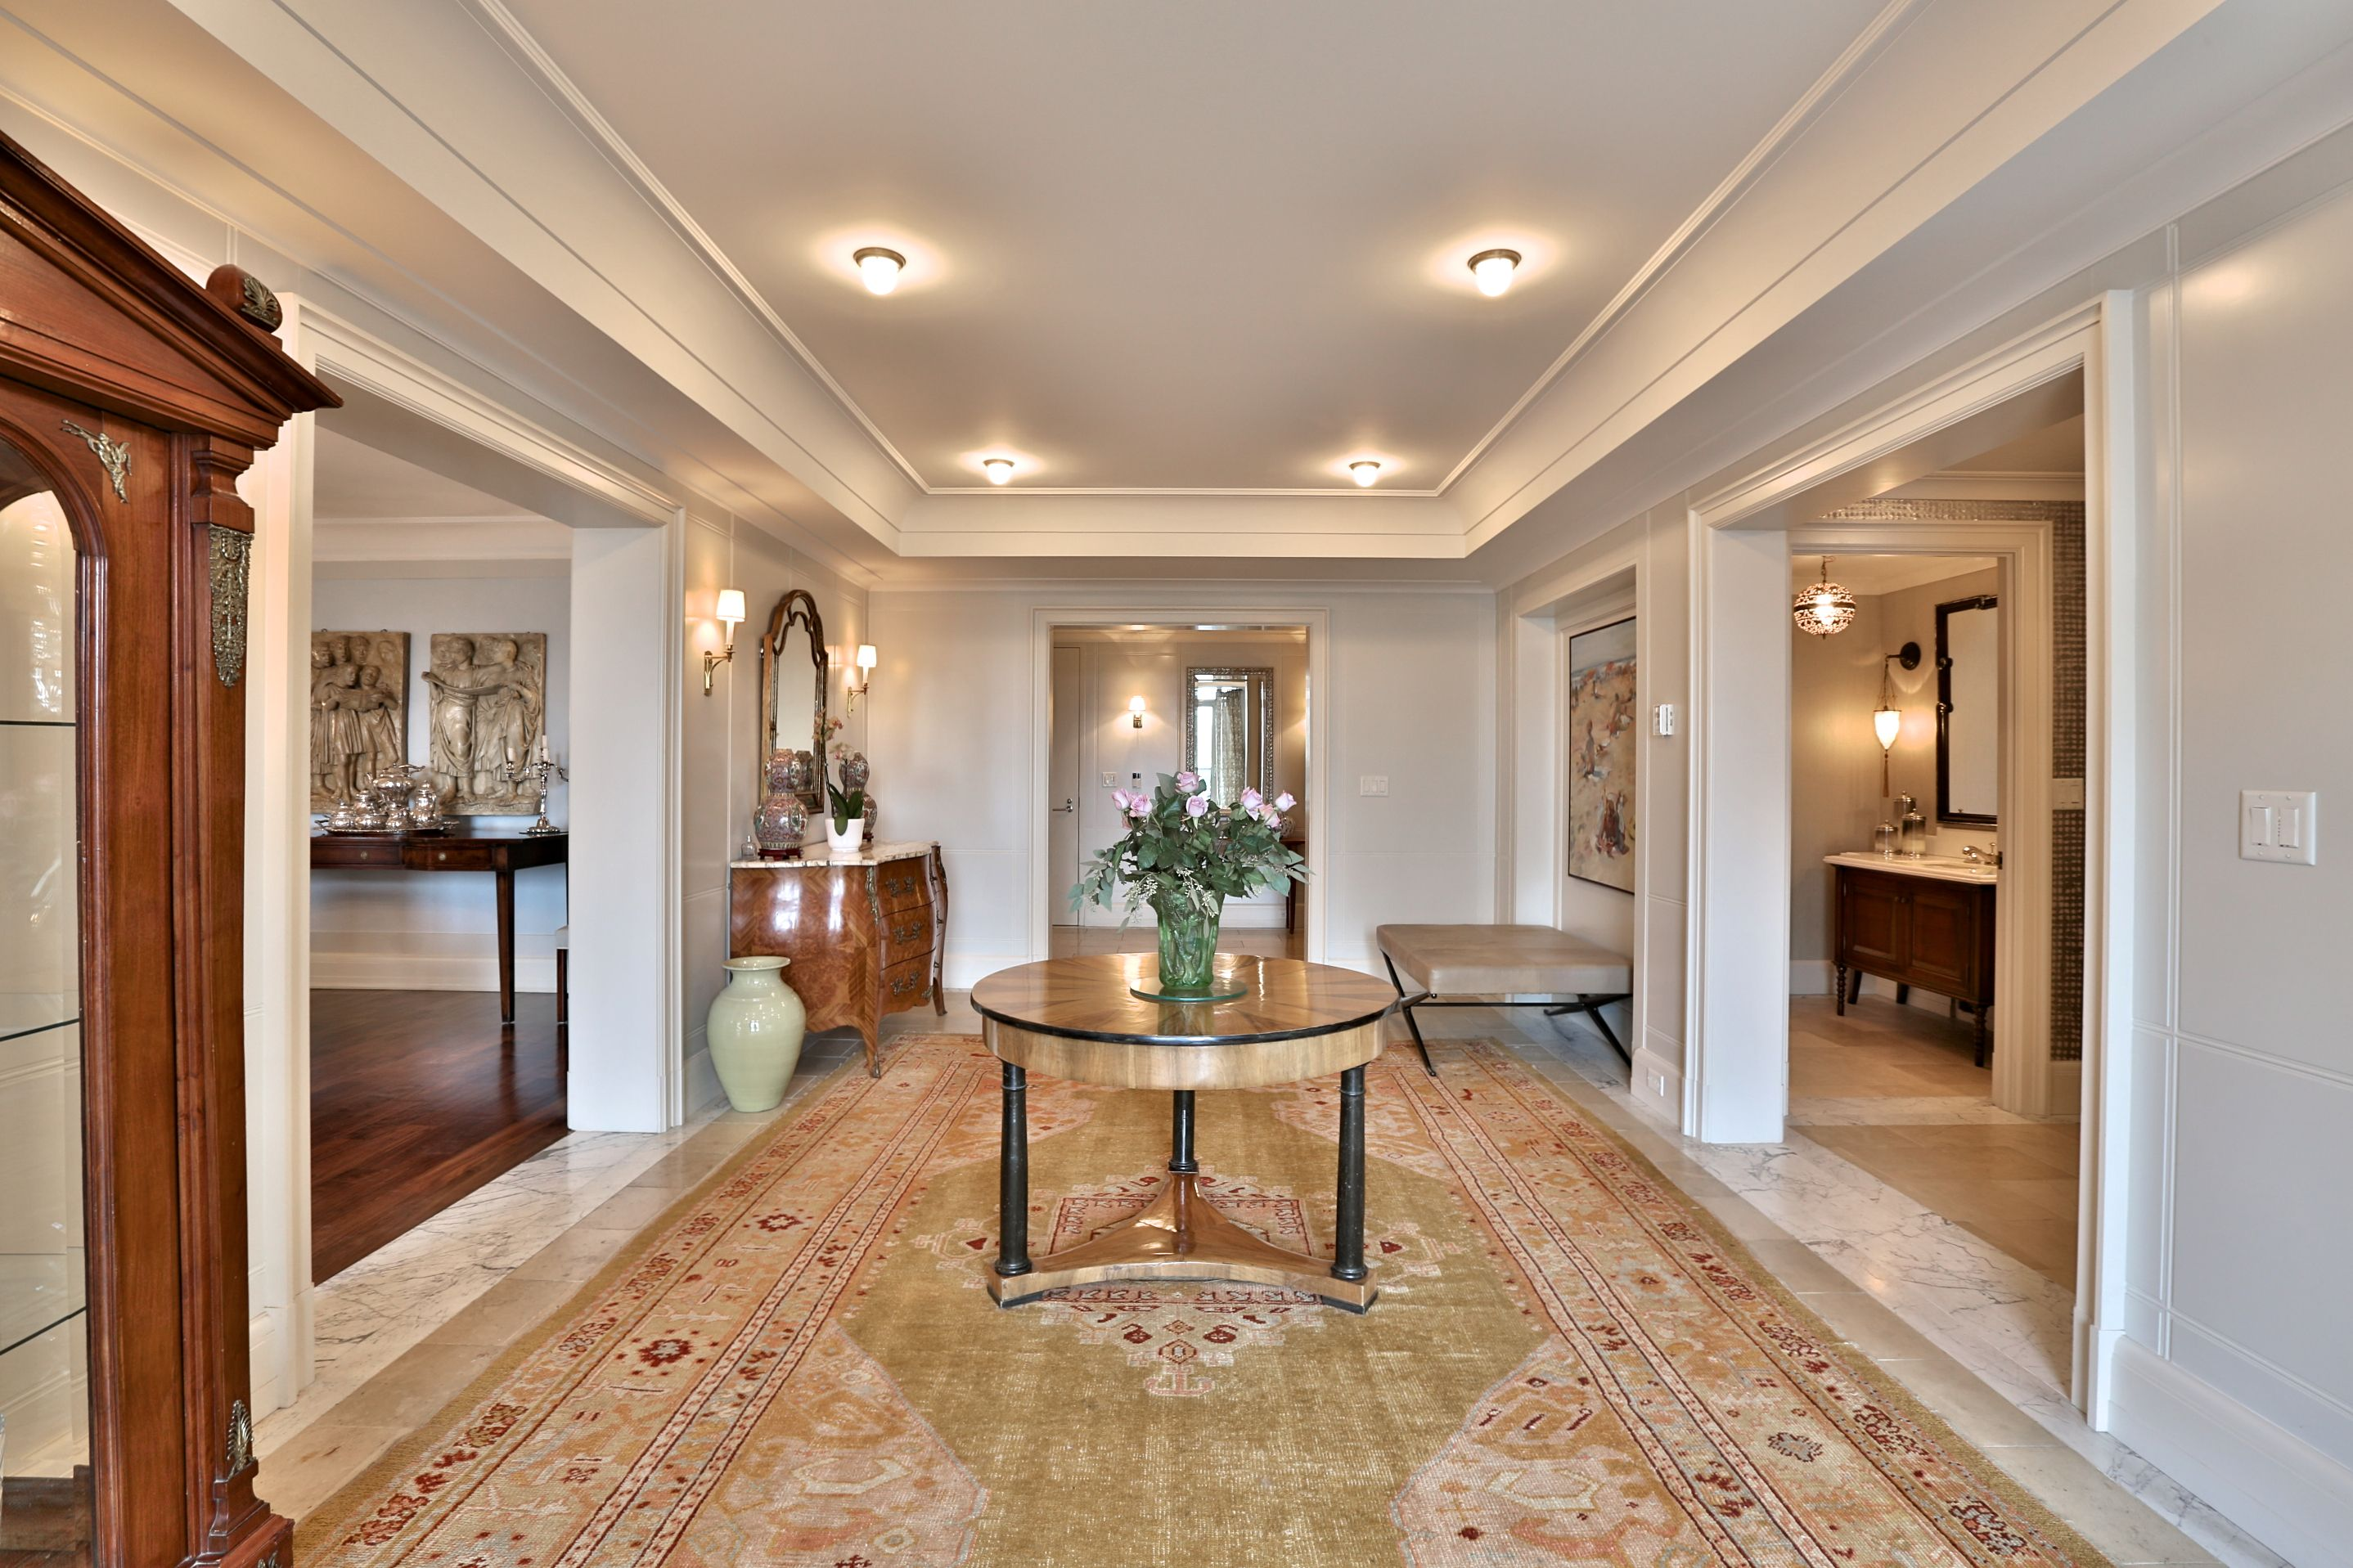 Please join Catherine Himelfarb-Borden for an agent open house this Thursday, September 22nd, 2016 at 10 Bellair Street #608.  The most desirable T.O address bar none. This life style alternative, Katherine Newman designed property exudes quality, class and style. In the most elegant and exclusive building. This condo is steps from Yorkville! Marble foyer, grand principle rooms, huge master suite, stunning floor to ceiling windows. 416-975-5588